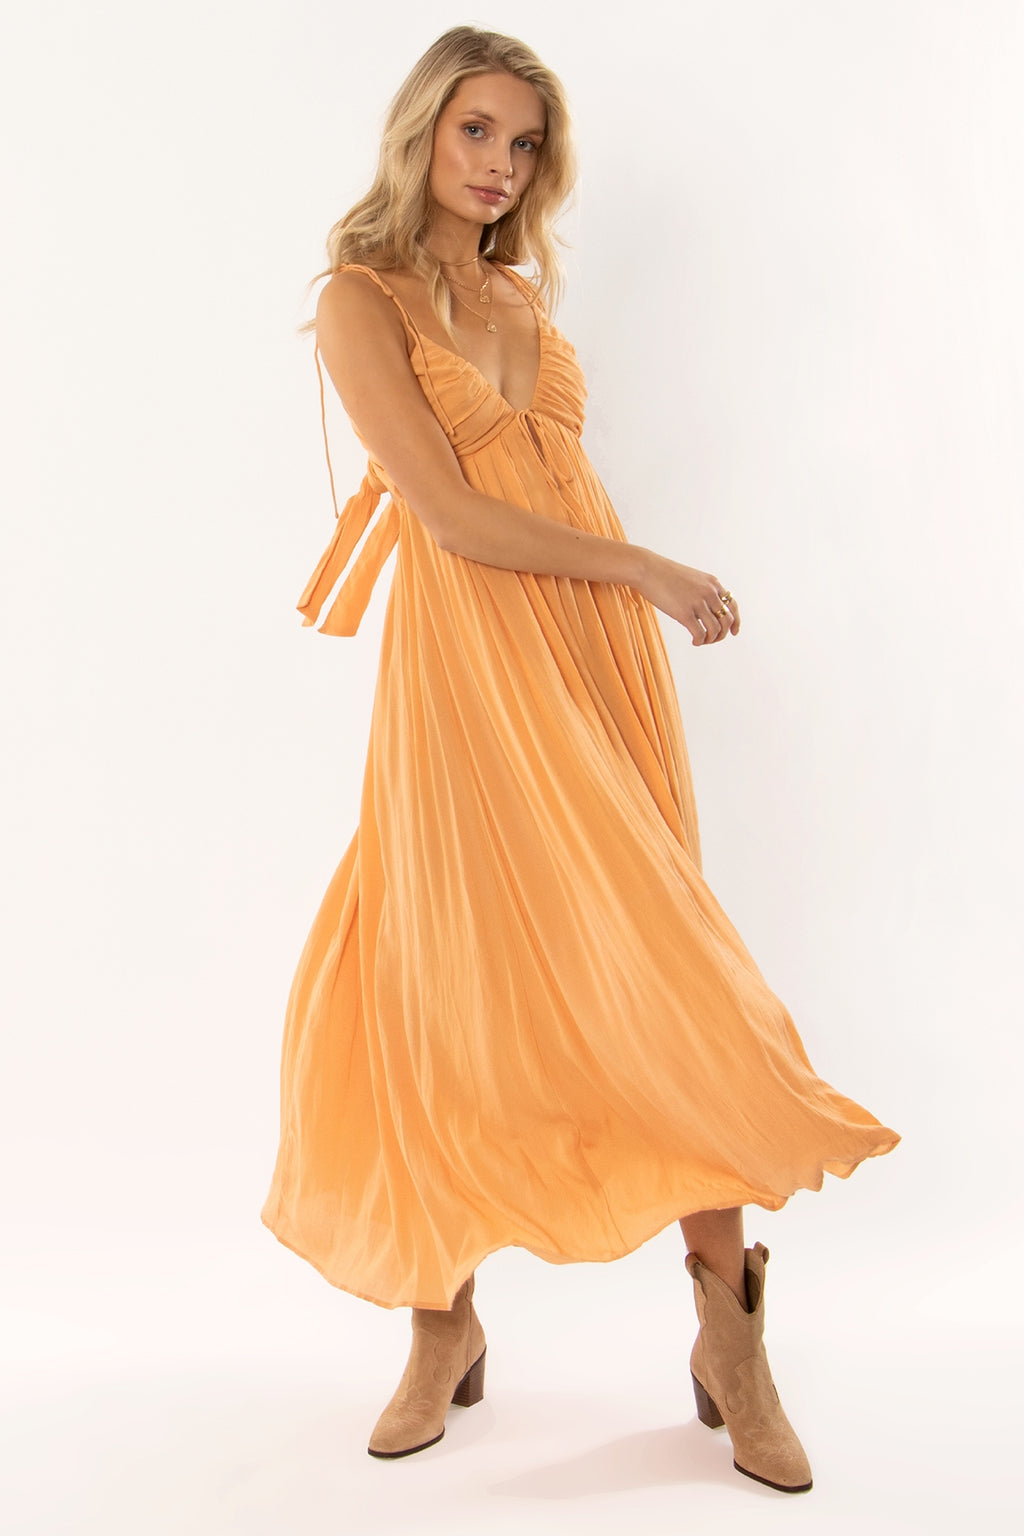 Kamari Dress in Sahara Sand